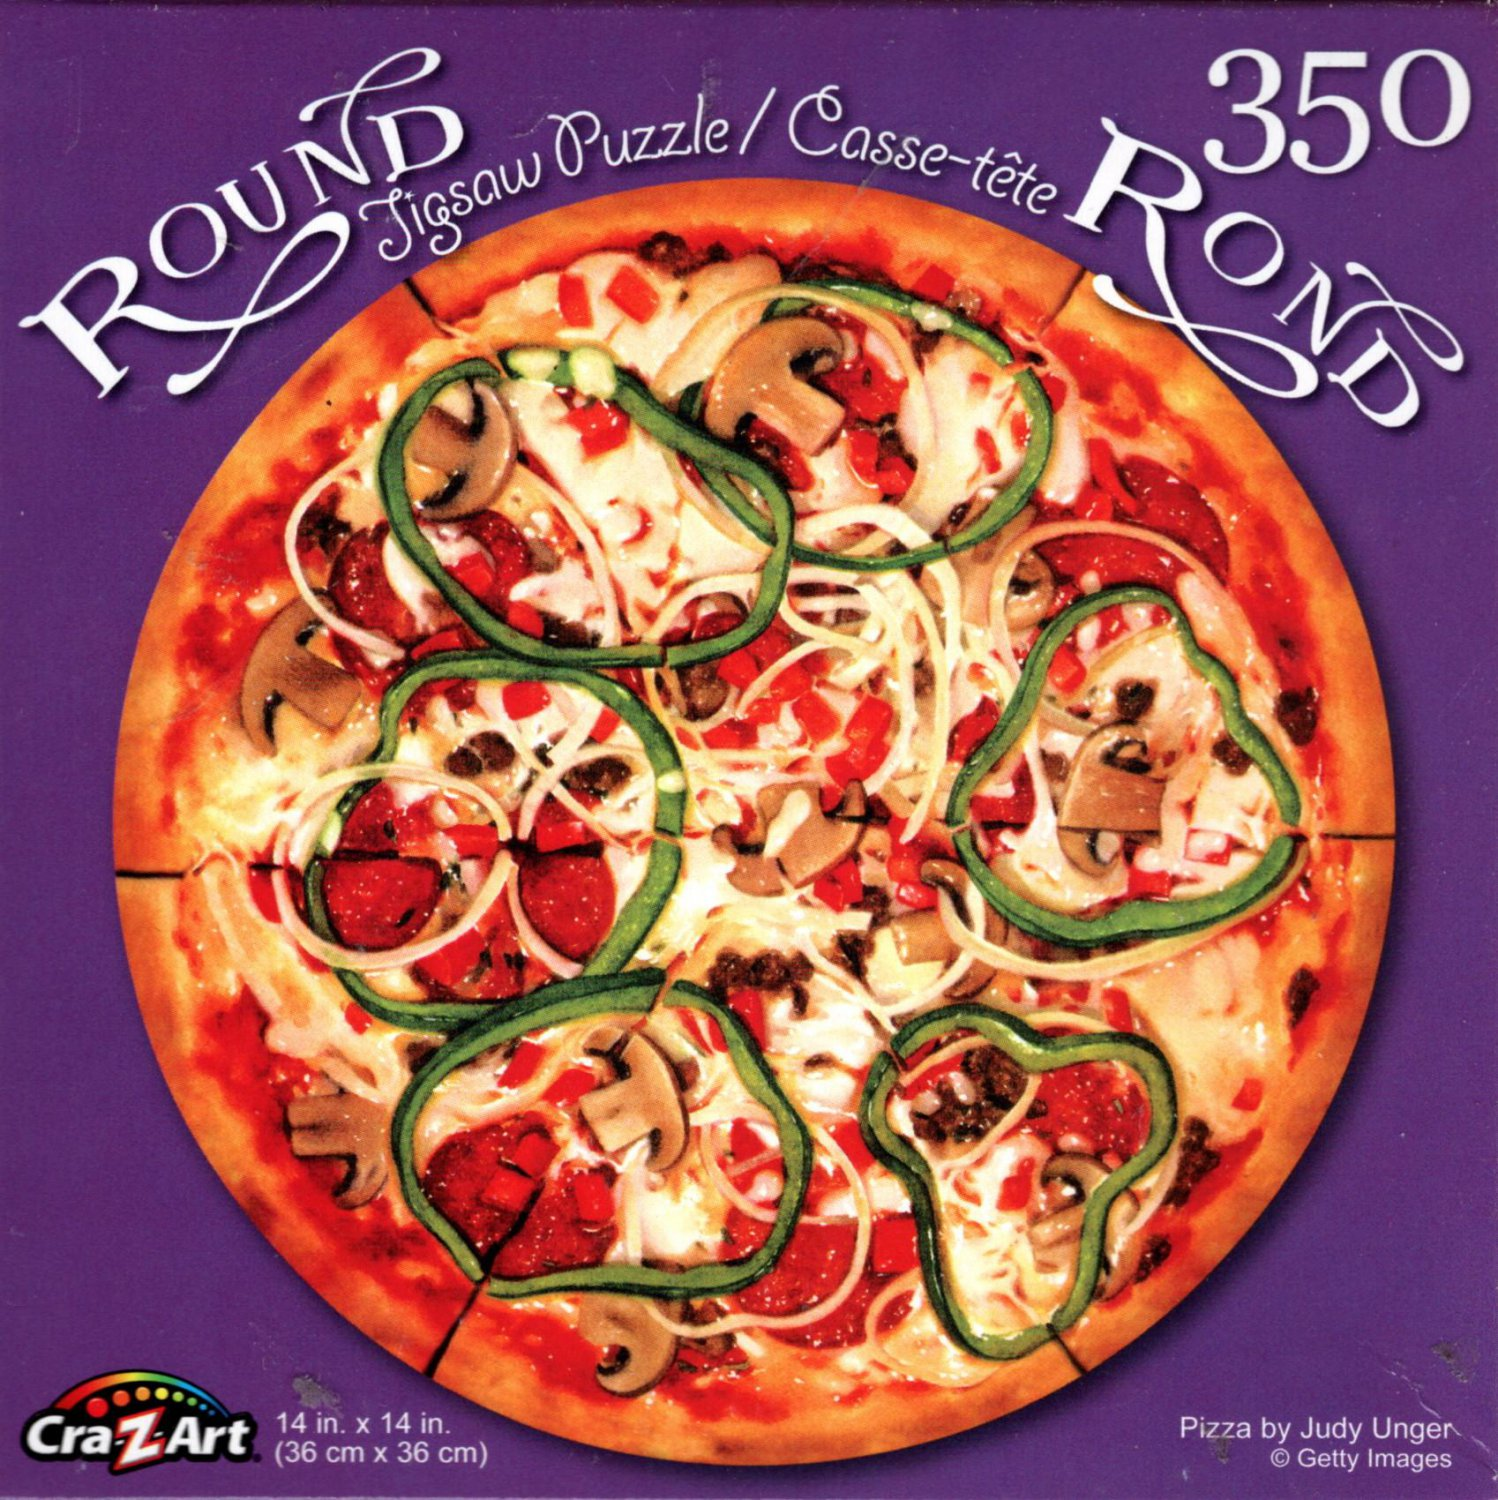 Pizza by Judy Unger - 350 Piece Round Jigsaw Puzzle